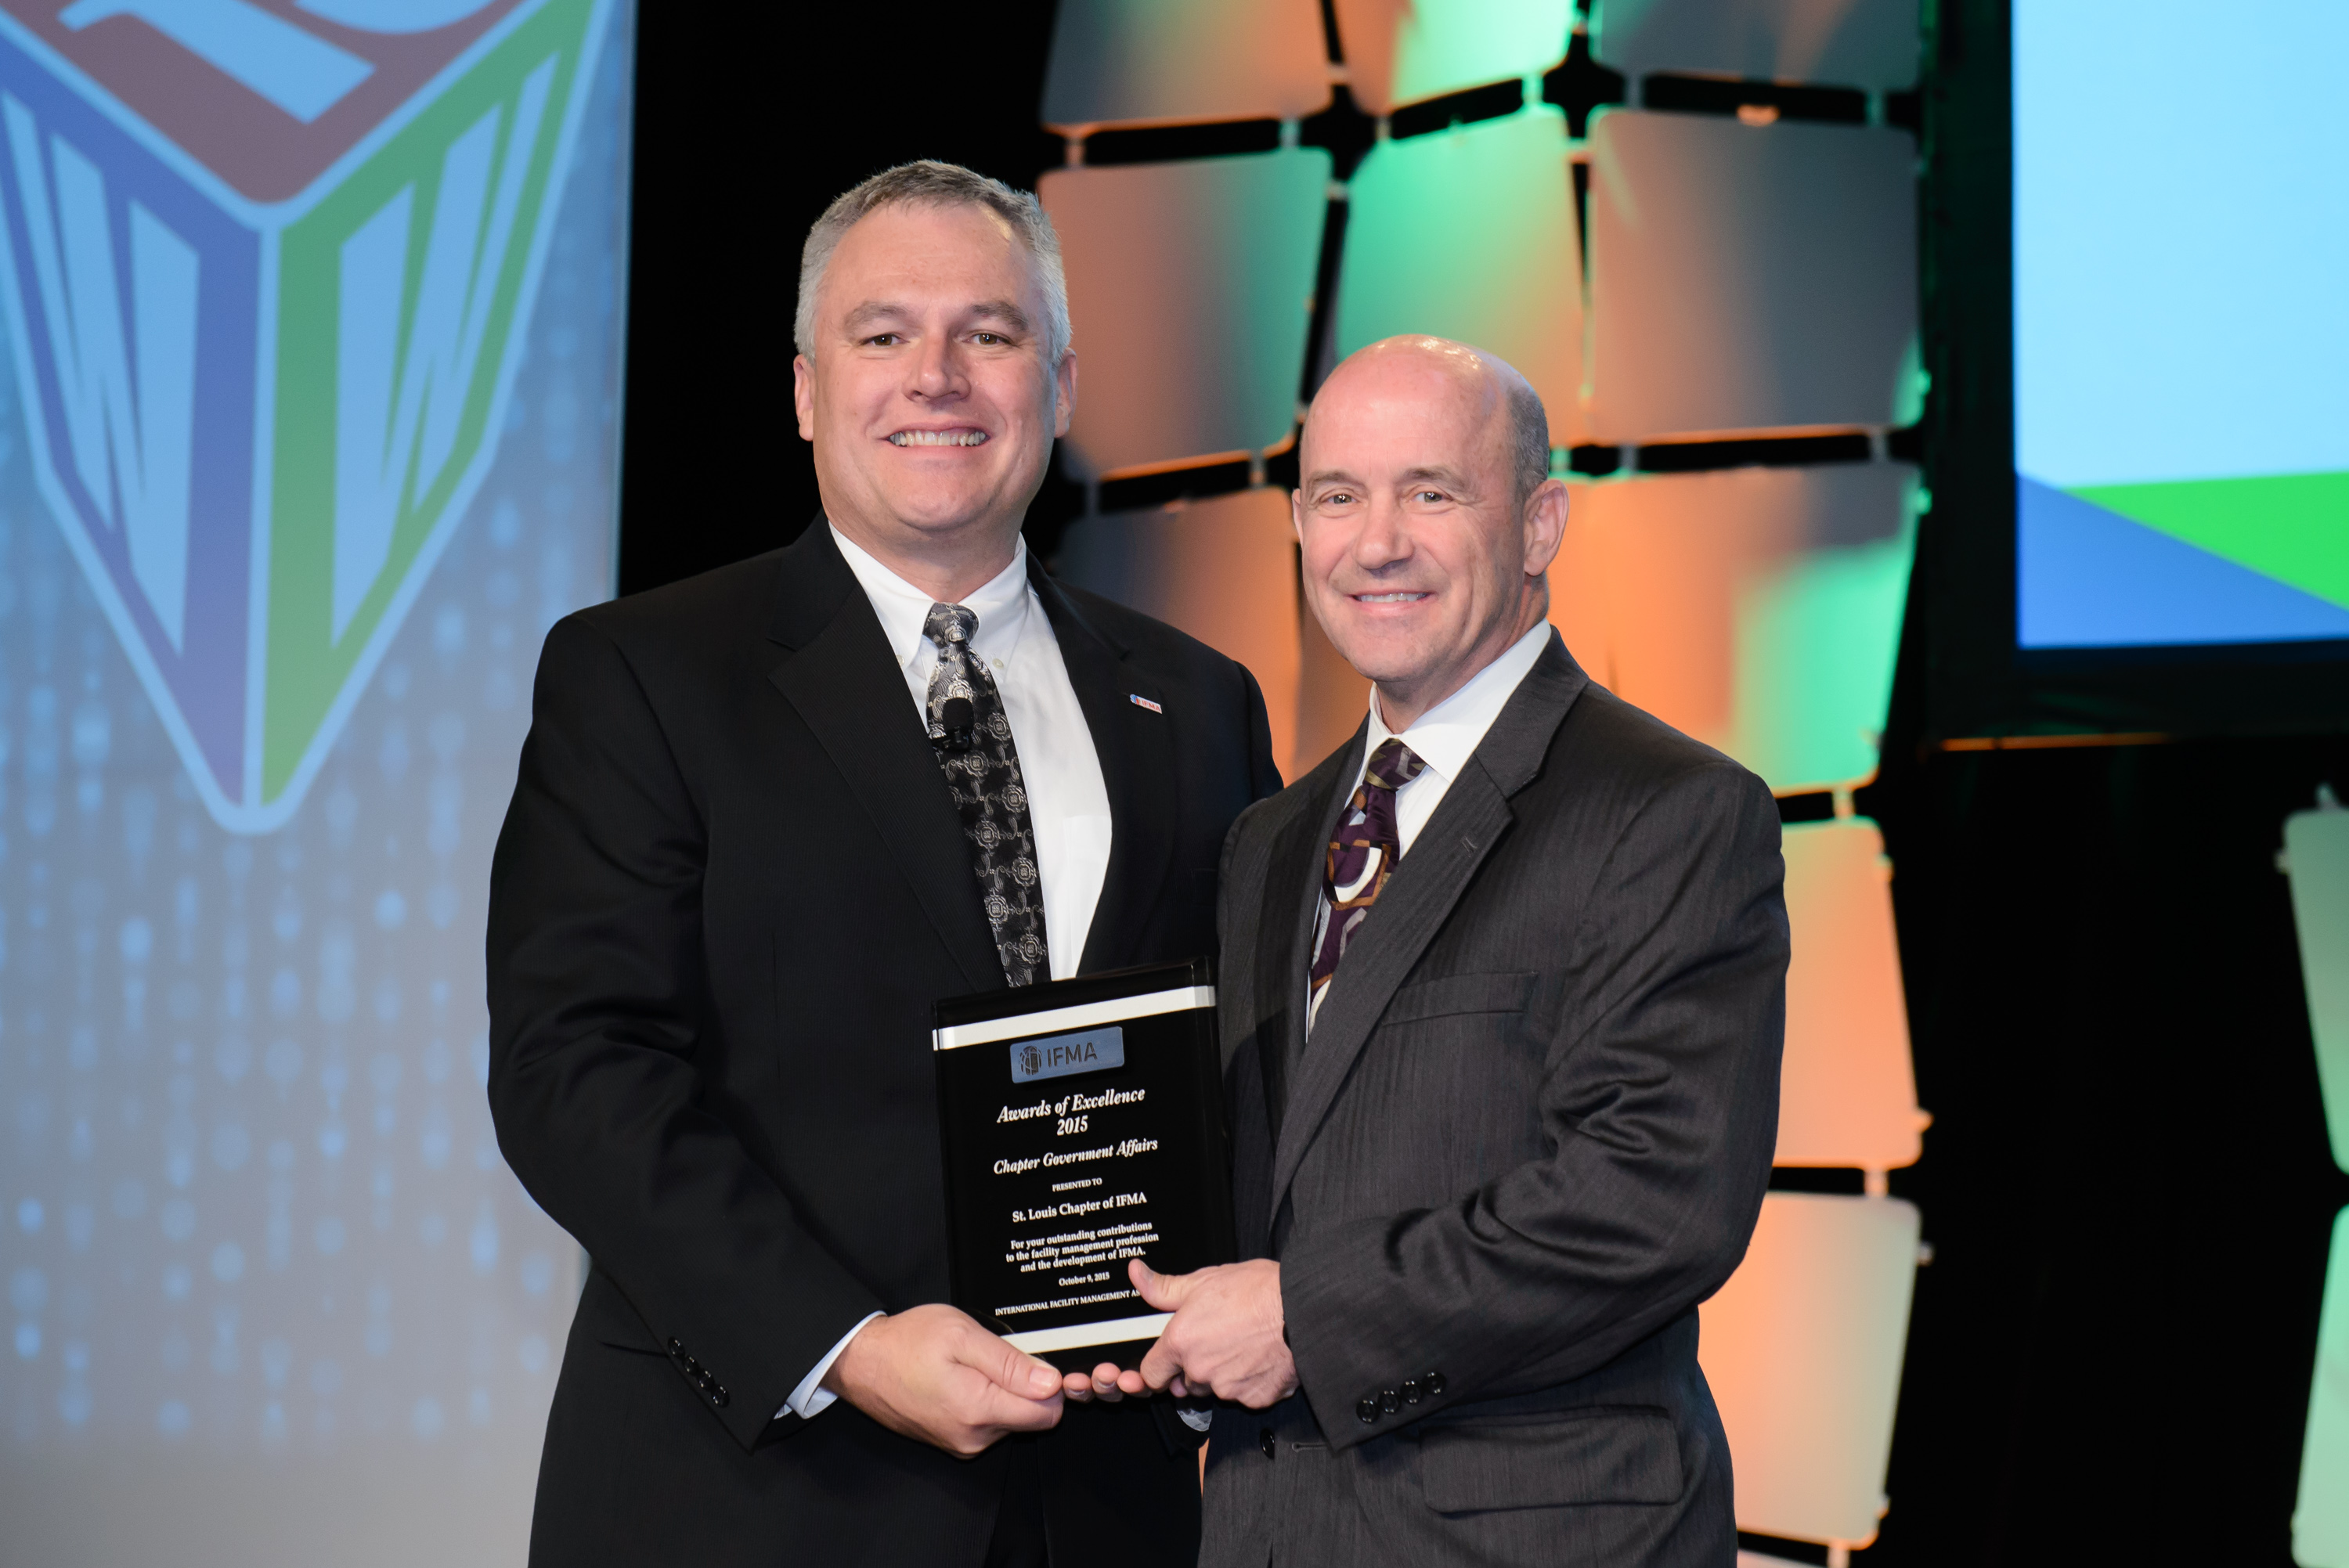 St. Louis Chapter receives Chapter Award in Government Affairs